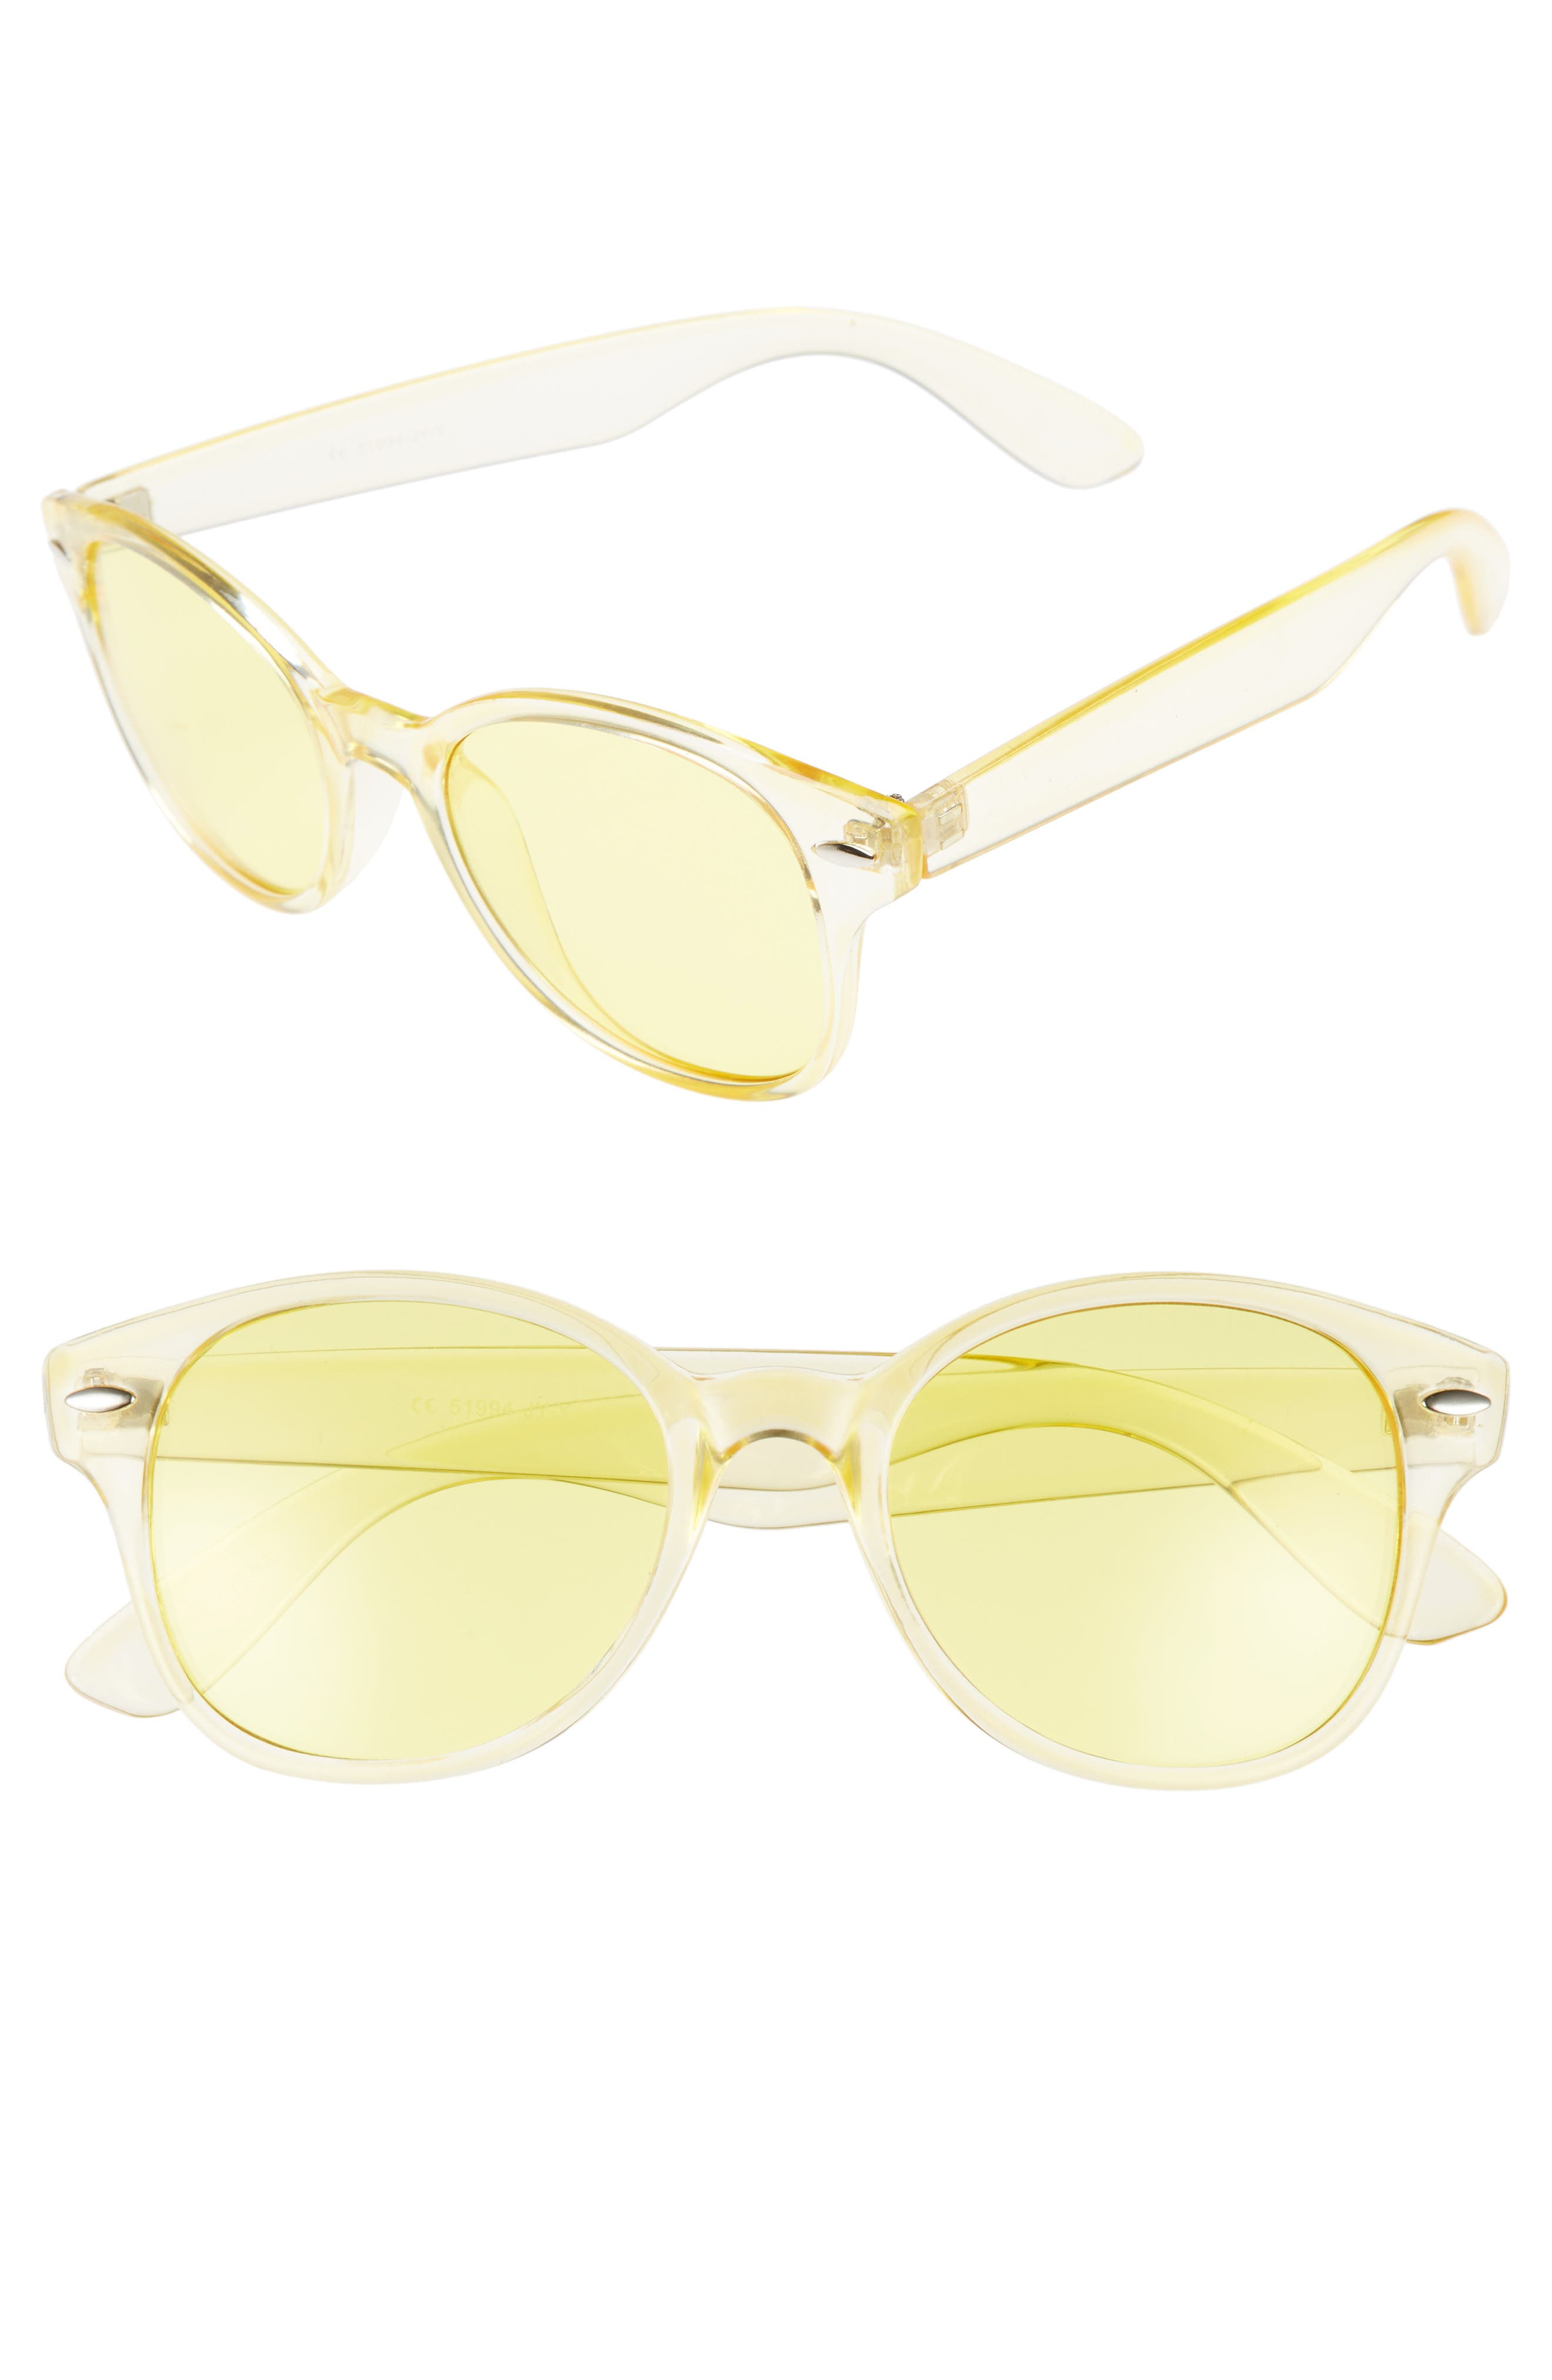 50mm Transparent Round Sunglasses,                             Main thumbnail 1, color,                             Yellow